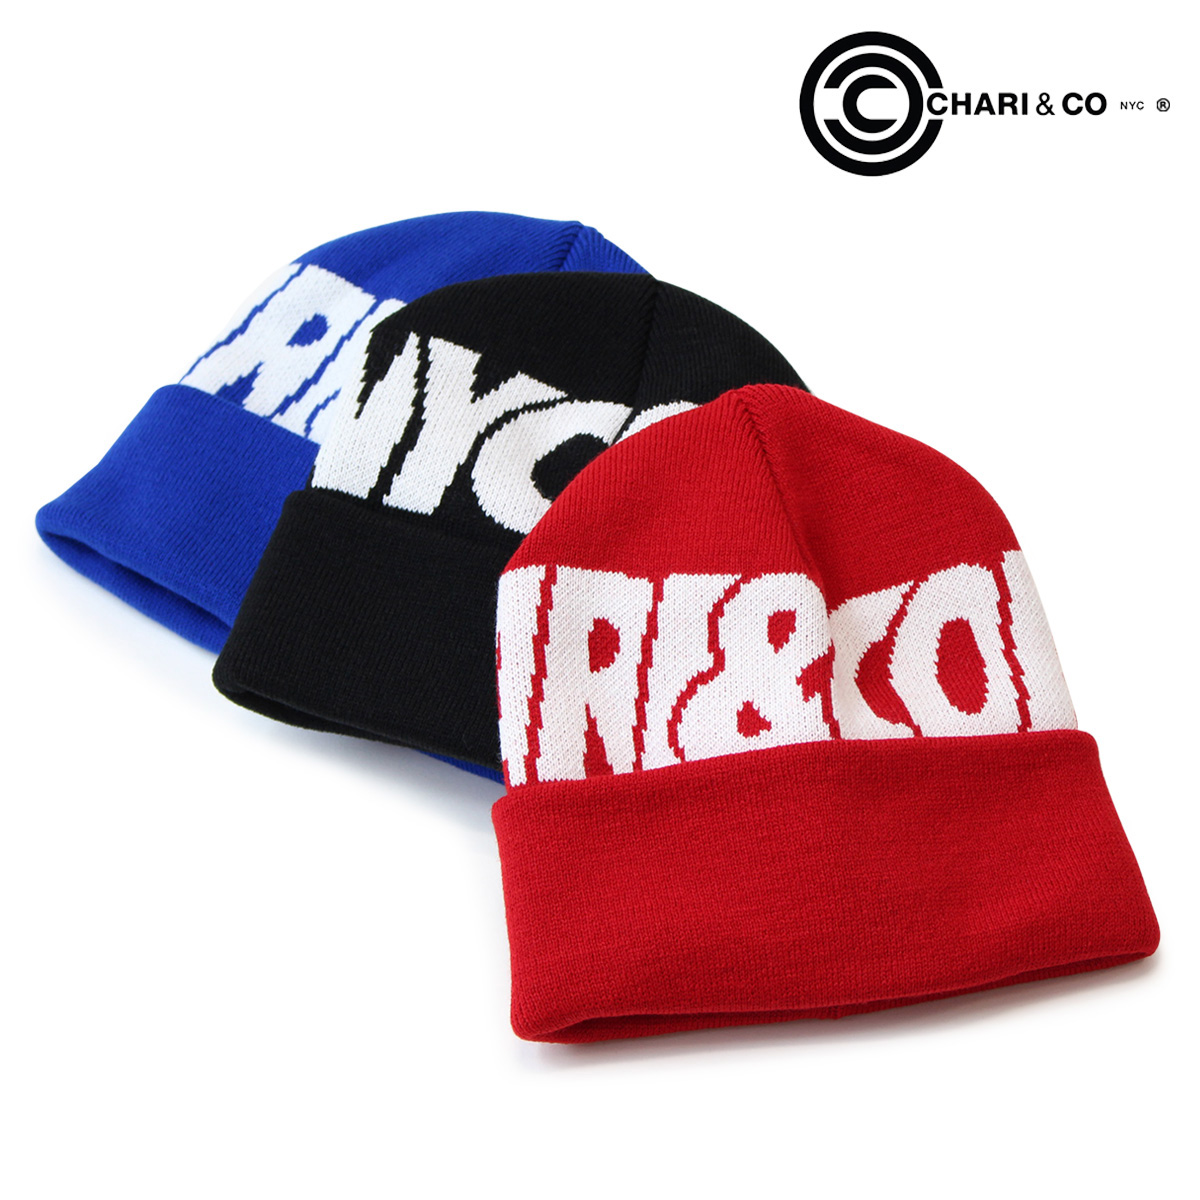 c8e0e468f74 CHARI CO NYC chariandcoa mens ladies knit hat knit Cap Beanie 3 color WATCH  CAP OVERLAP LOGO  9 17 new in stock